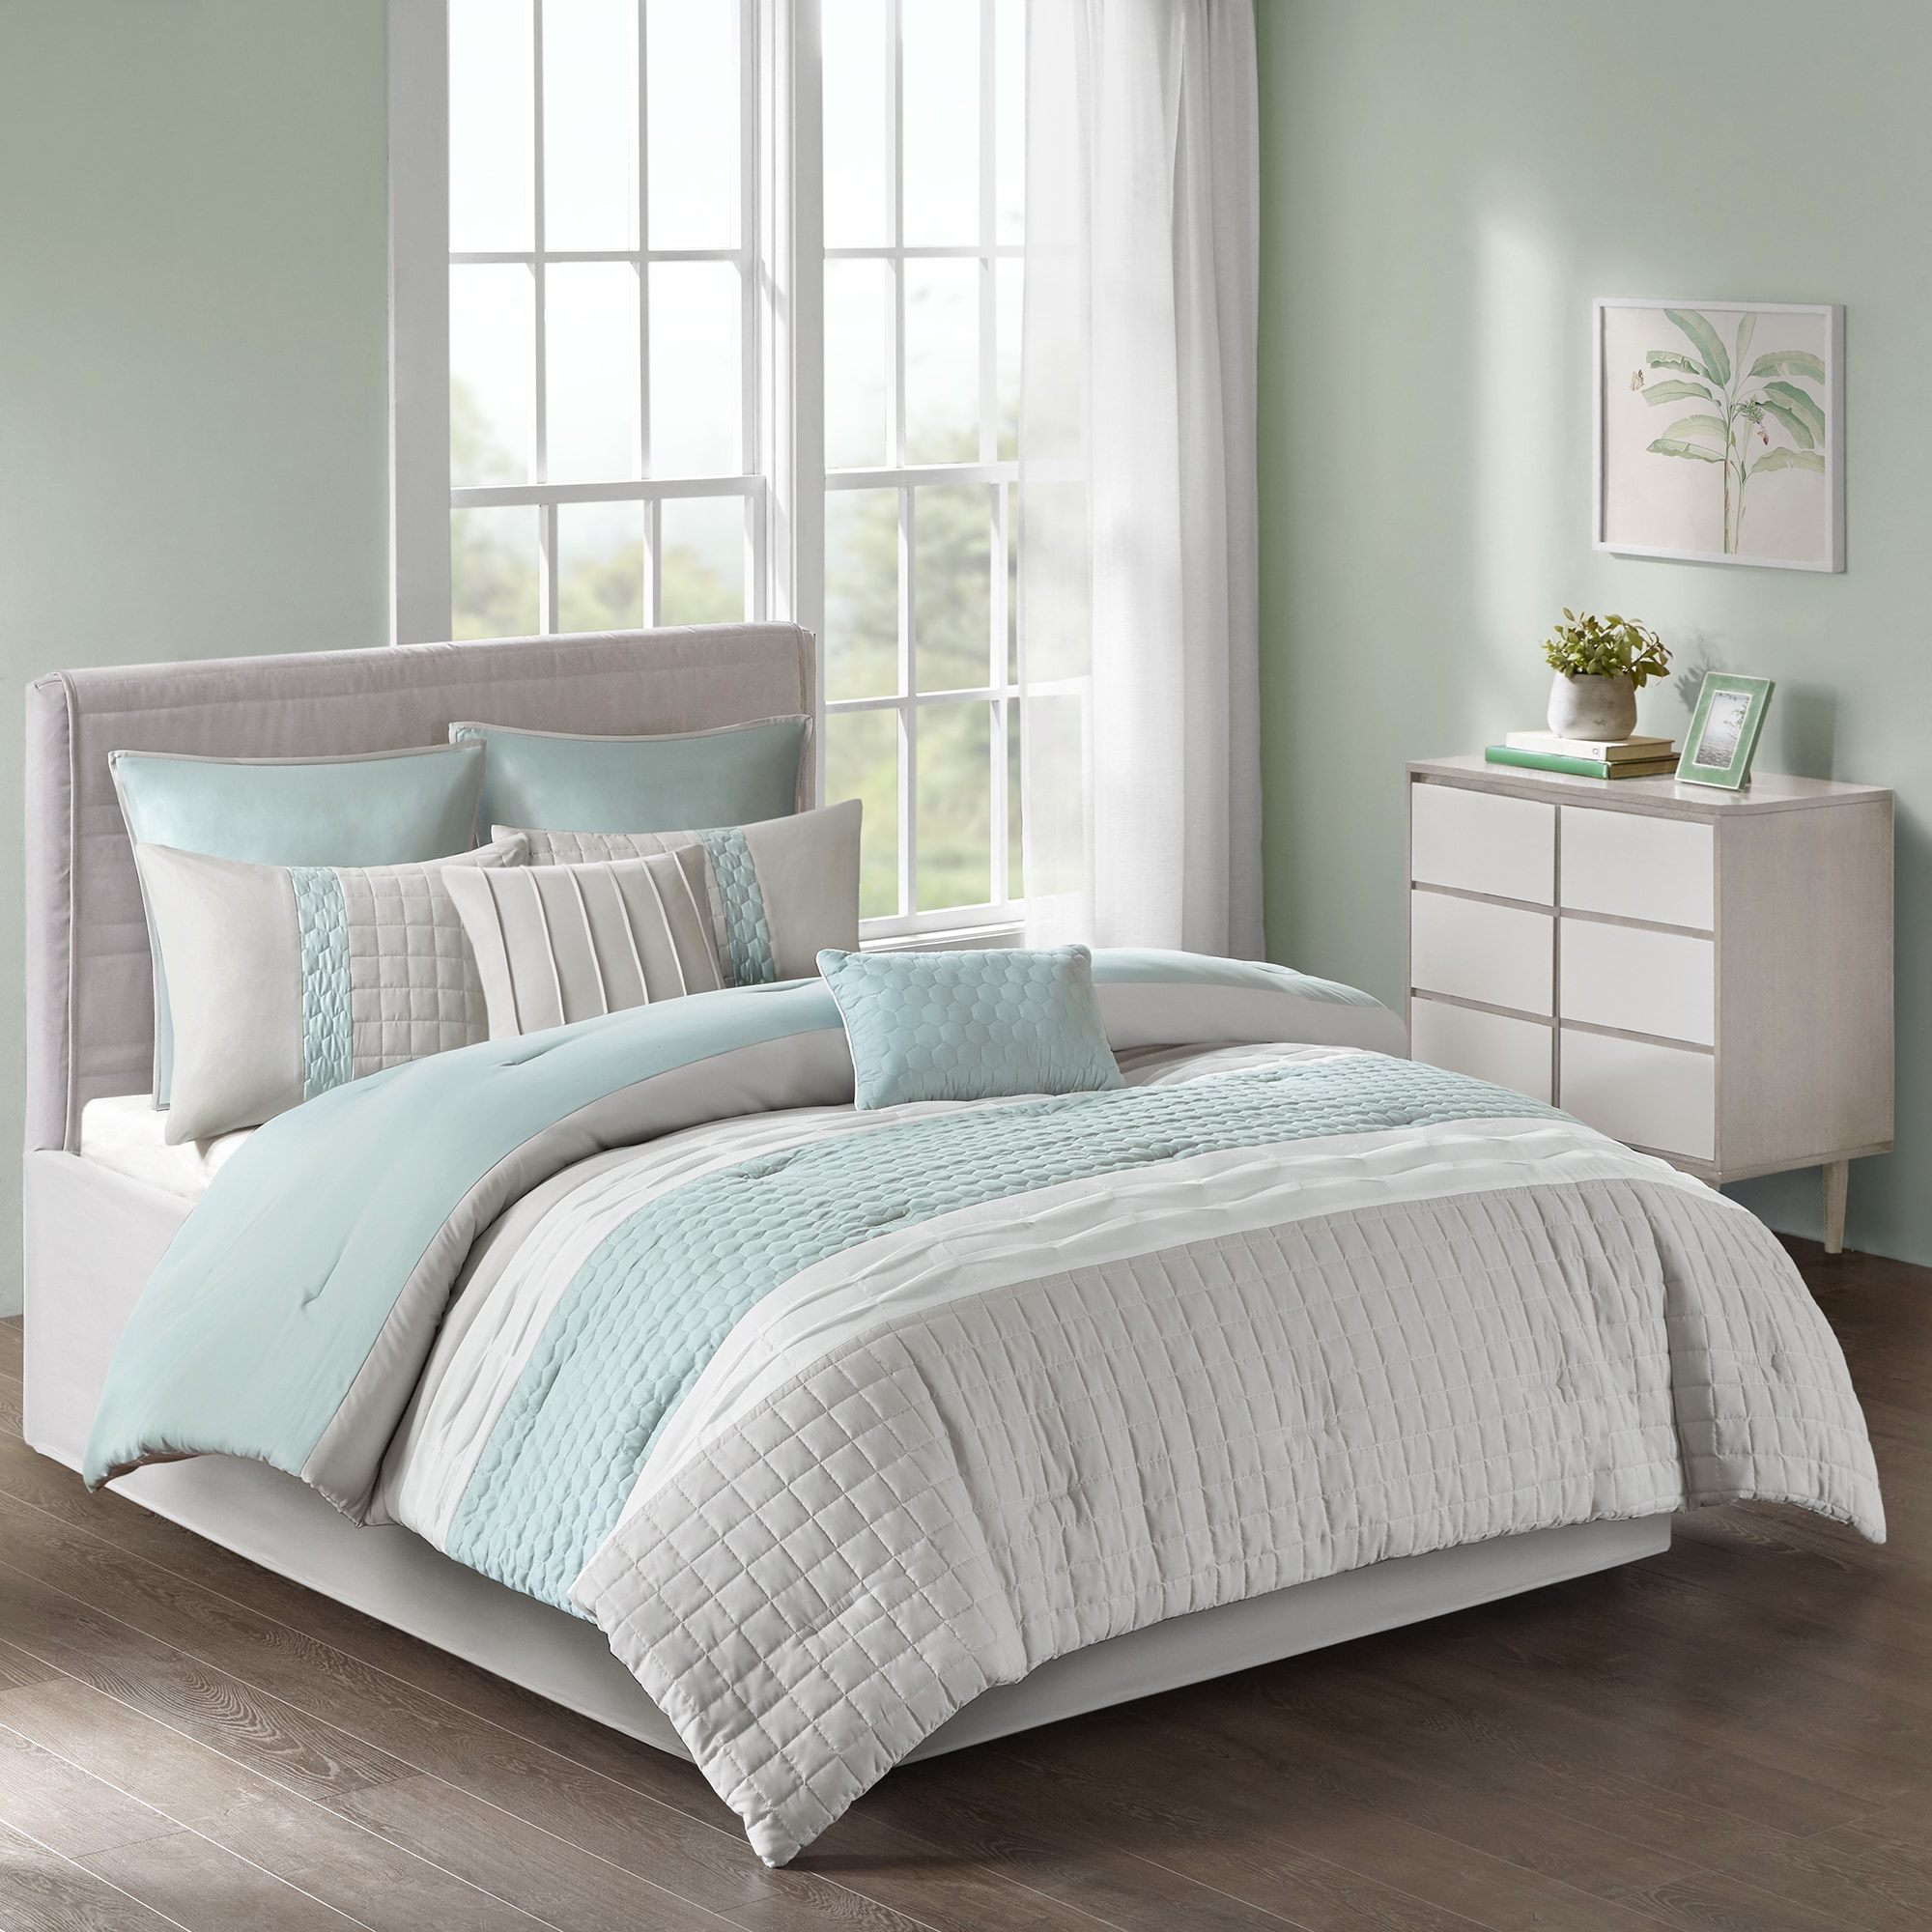 so heather vince gold rose comfy queen pin by martin this comforter set camuto home sets pinterest on looks